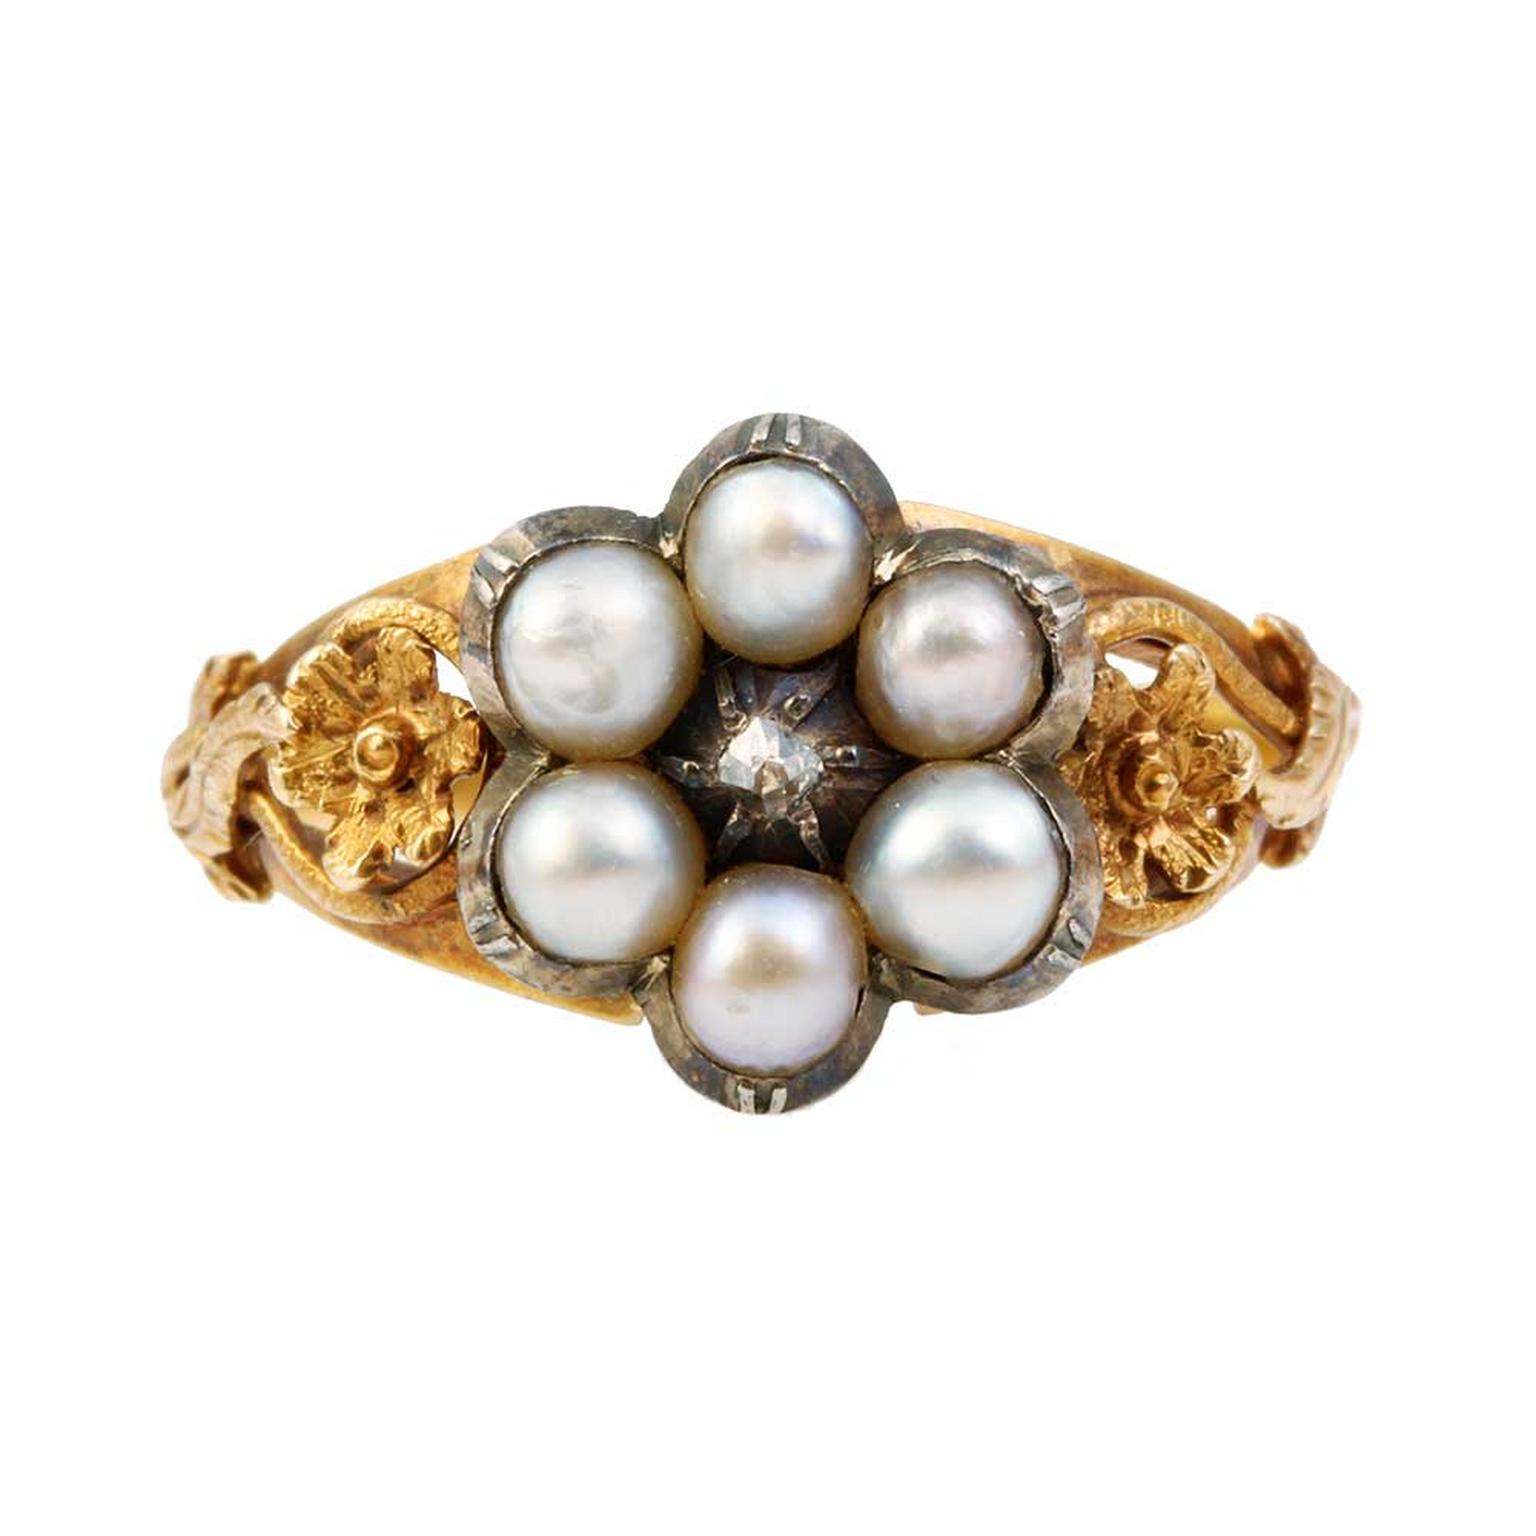 Bell and Bird pearl ring with a diamond and gold forget-me-nots